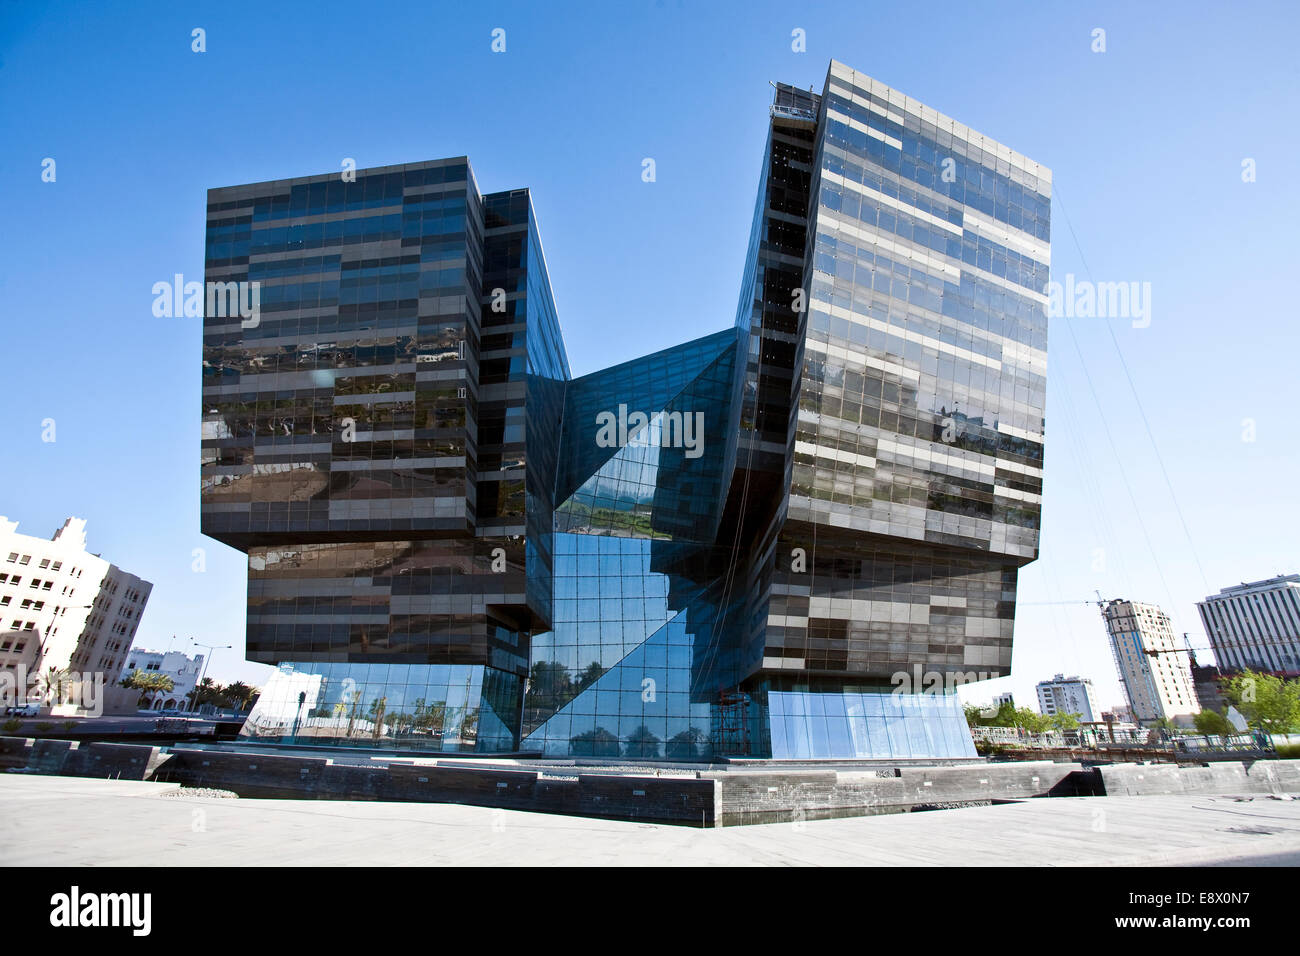 atelier jean nouvel building on the cornice doha city centre qatar stock photo royalty free. Black Bedroom Furniture Sets. Home Design Ideas